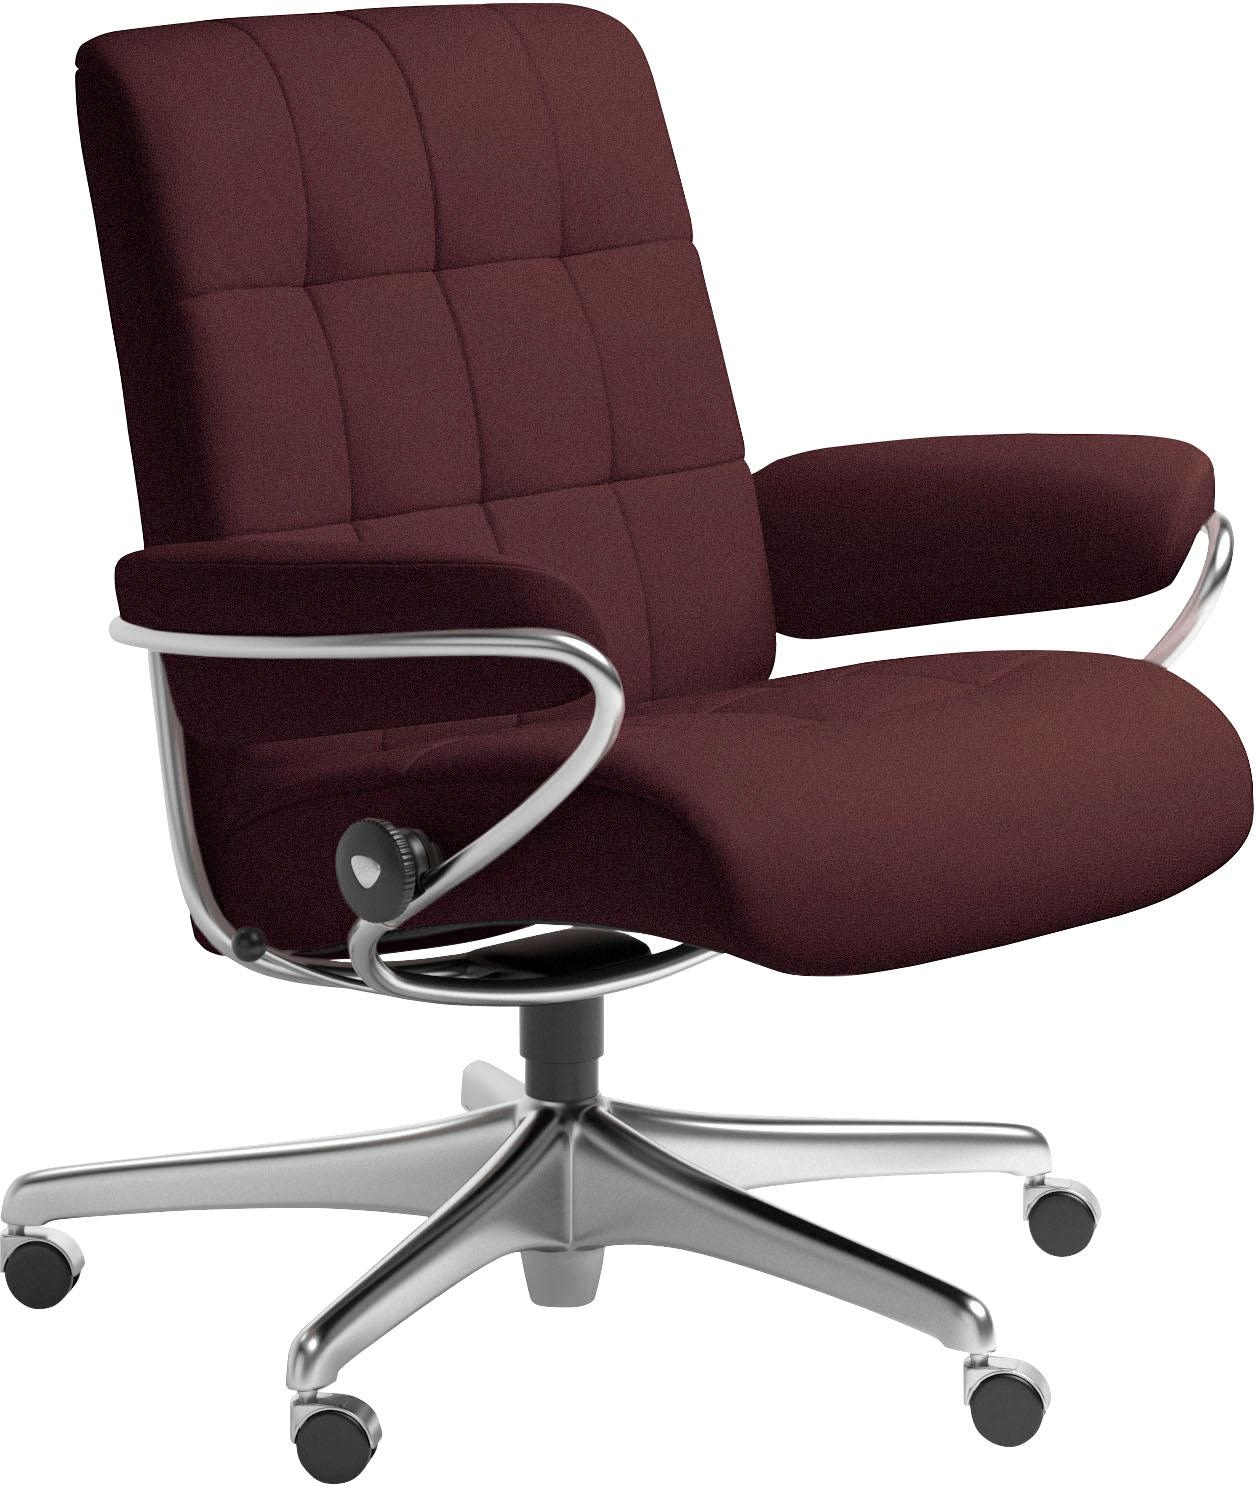 Stressless Relaxsessel London Mit Flexibler Ratenzahlung Quelle At